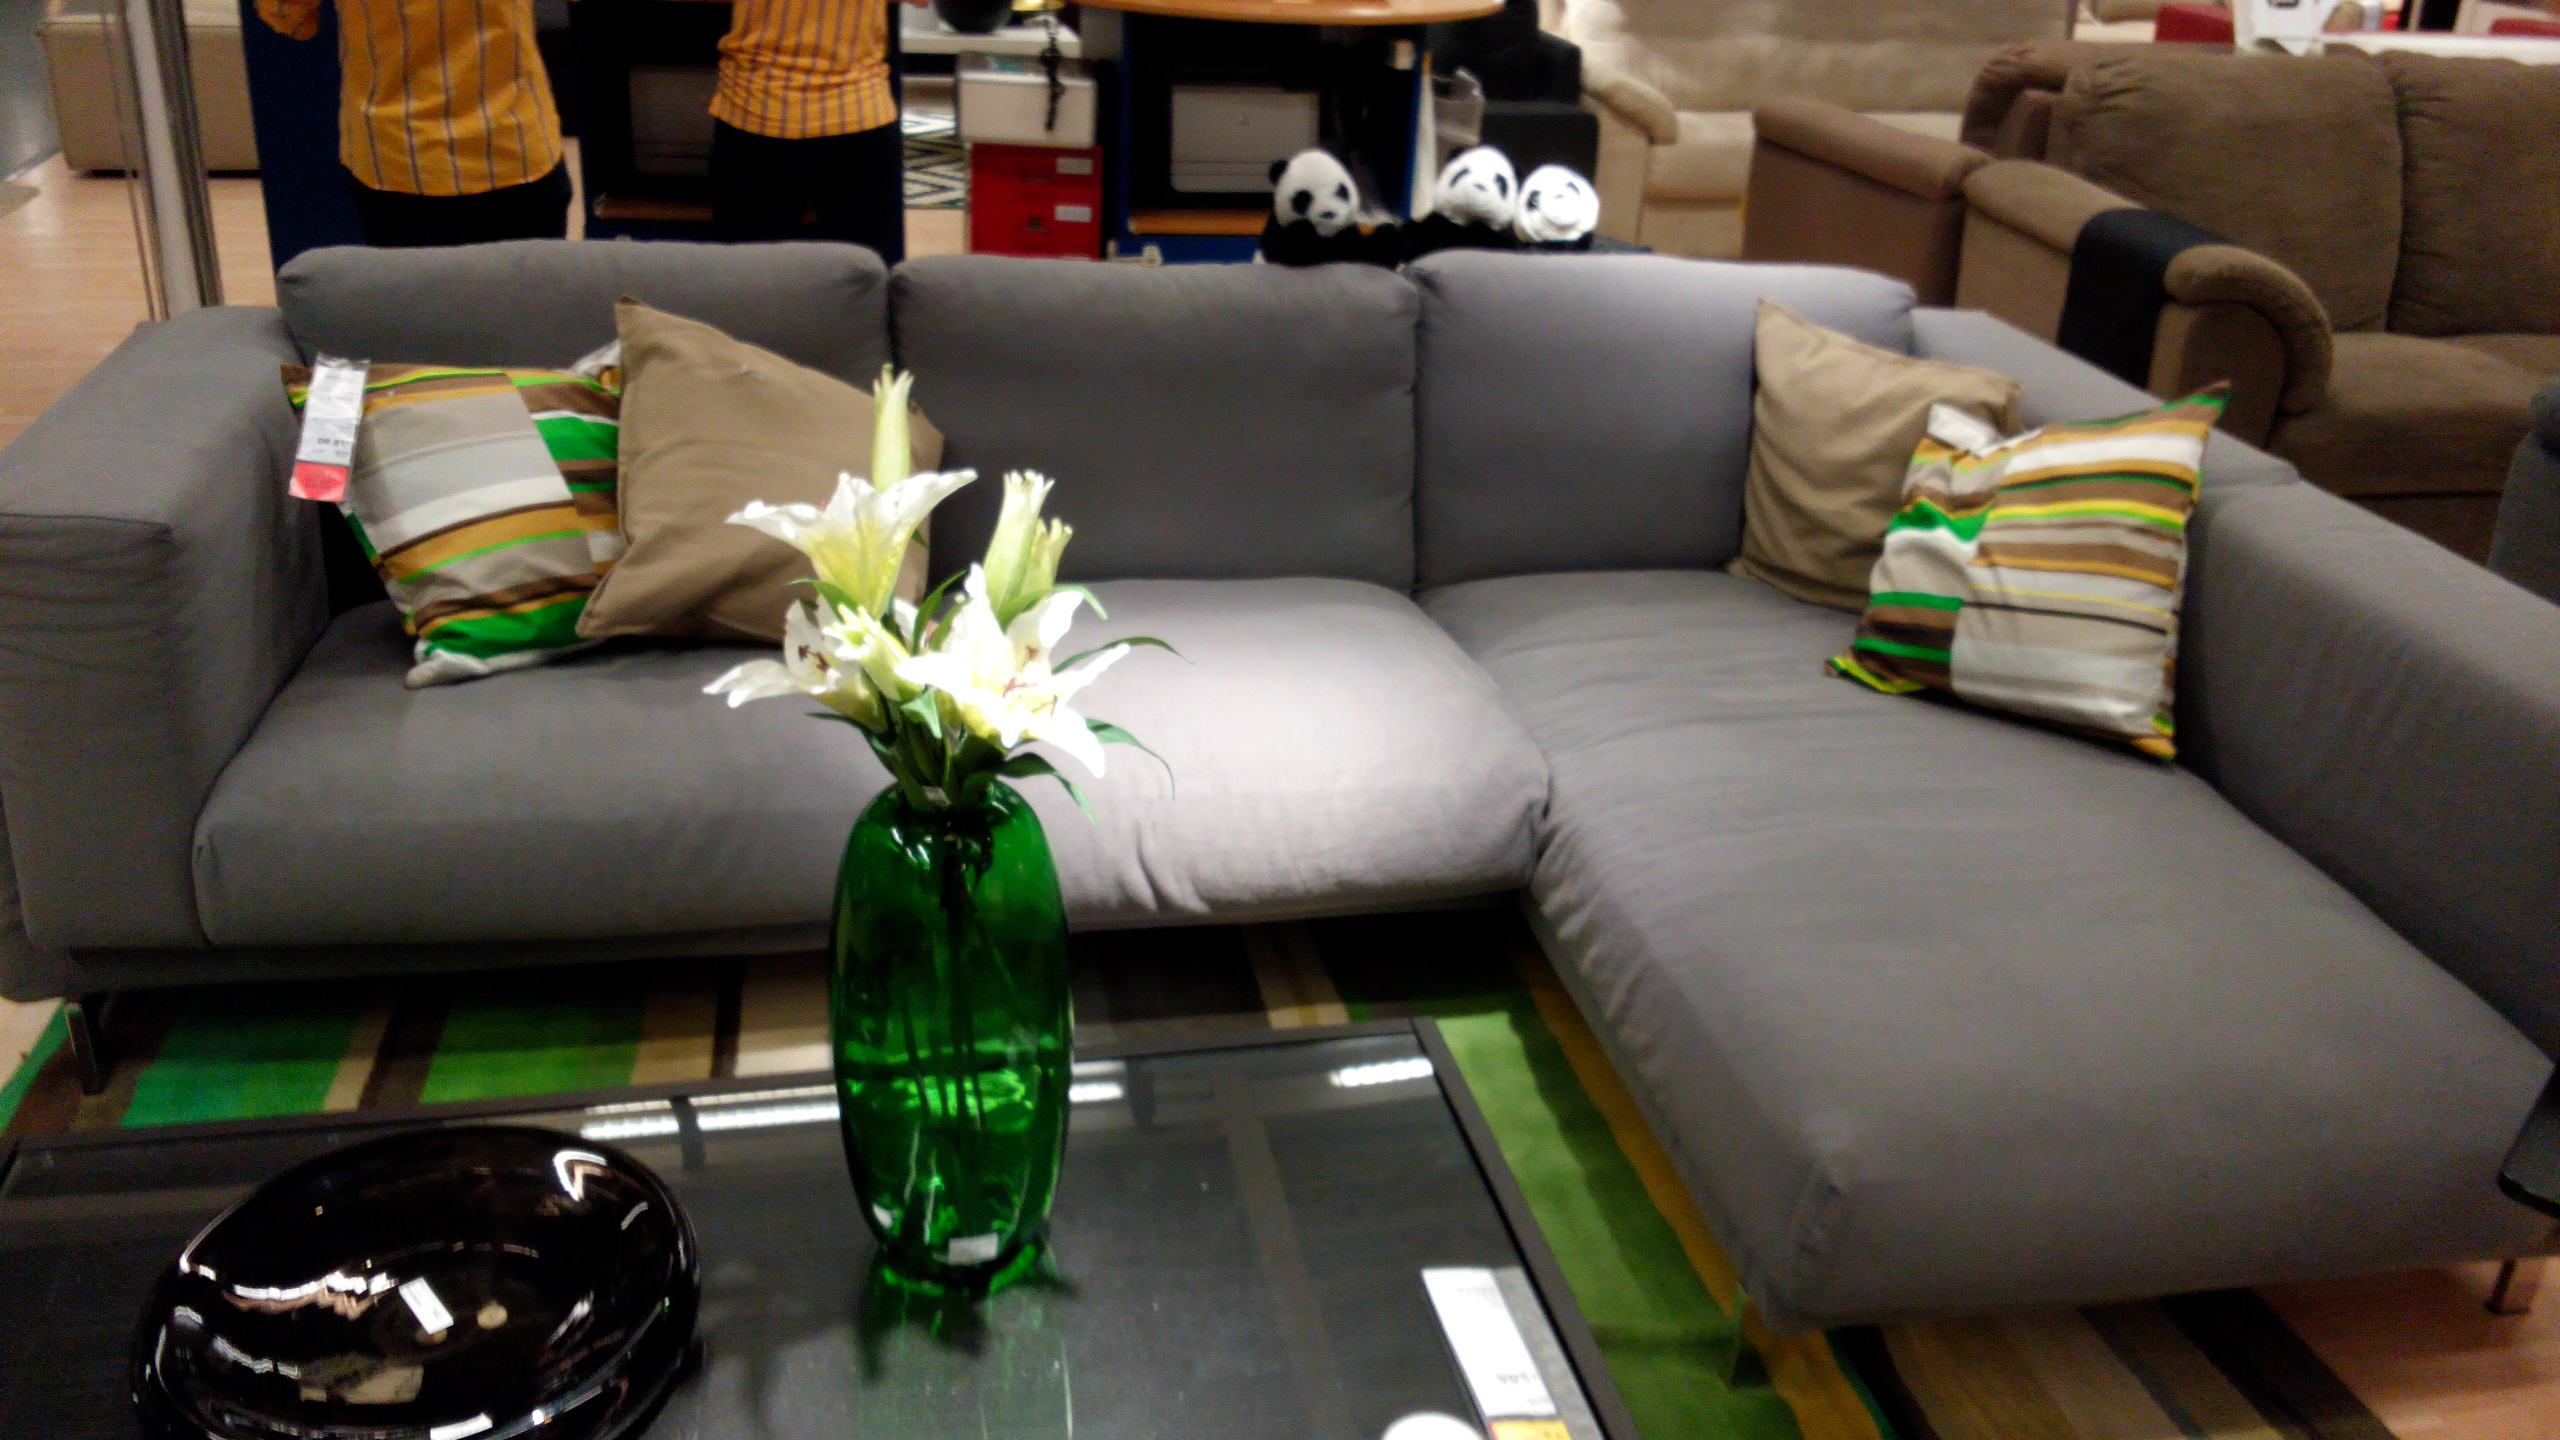 Sofa Nockeby Drdp Ikea Nockeby sofa Review New Ikea Couch Series Mid 2014 fort